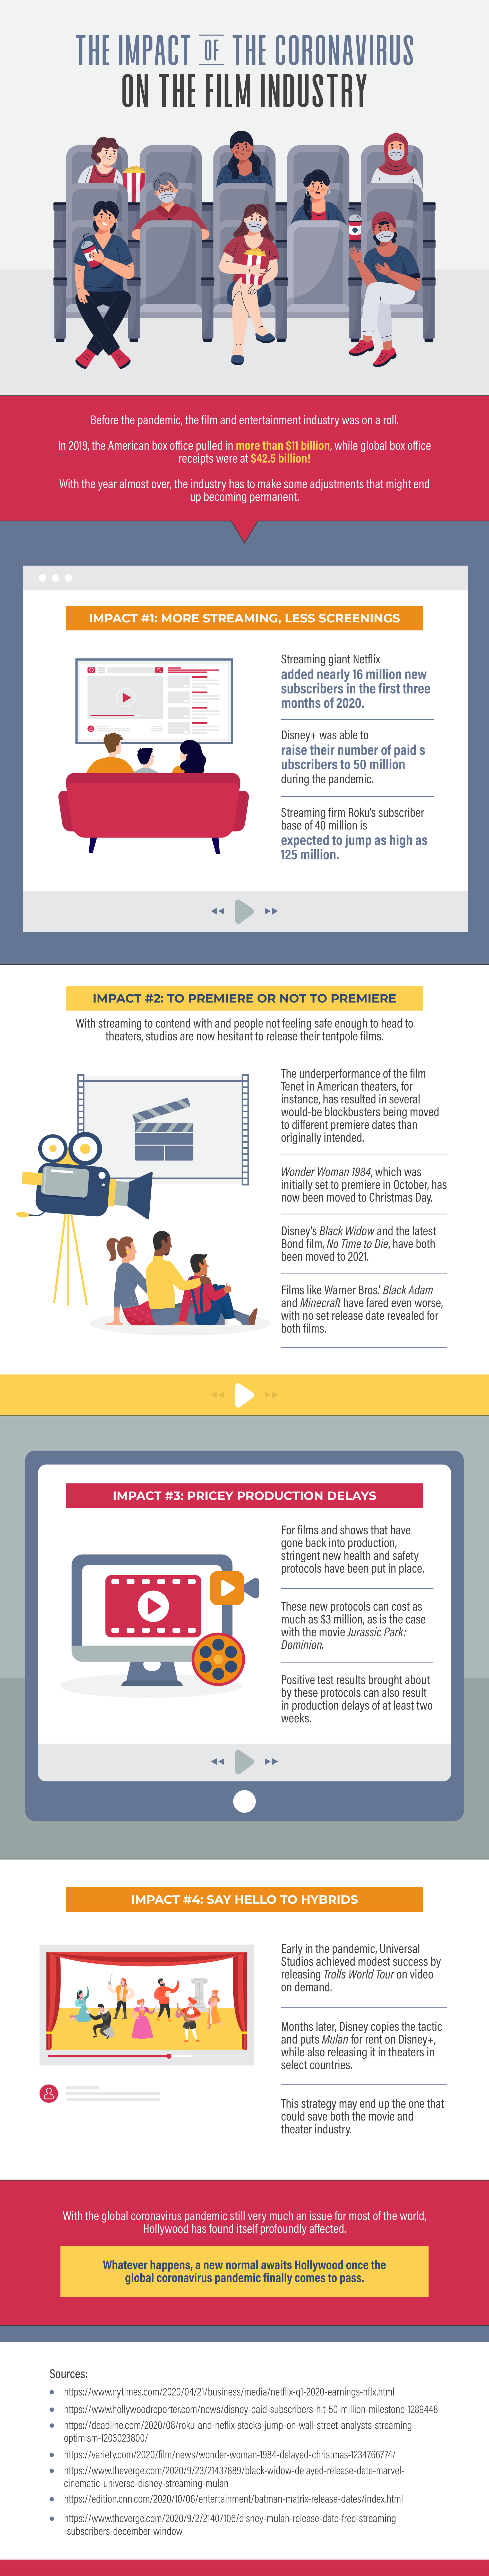 An infographic about the impact of the coronavirus on the film industry